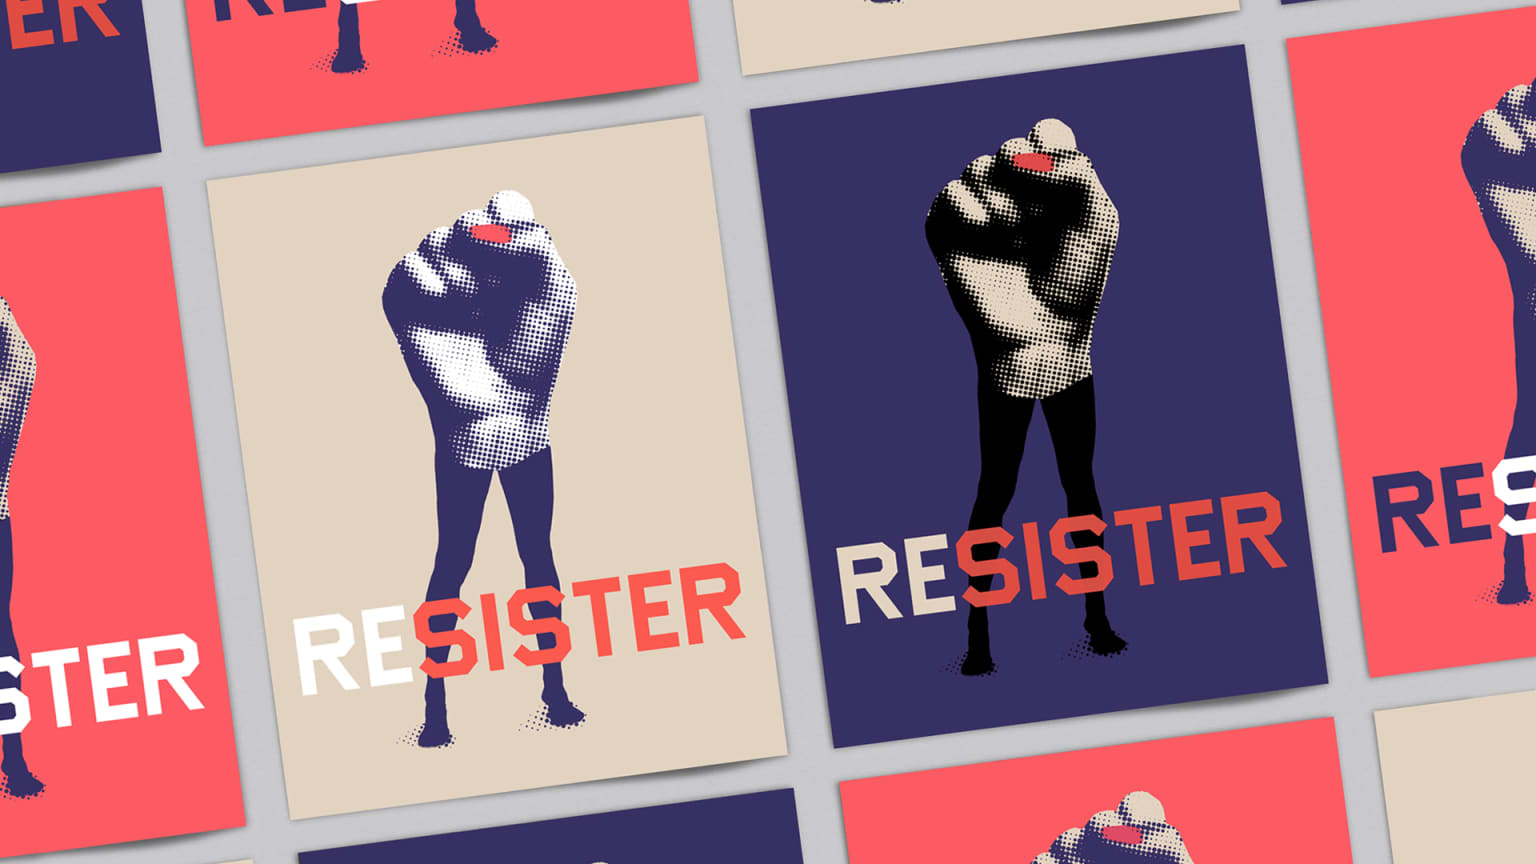 Resister Poster for the 2017 Women's March